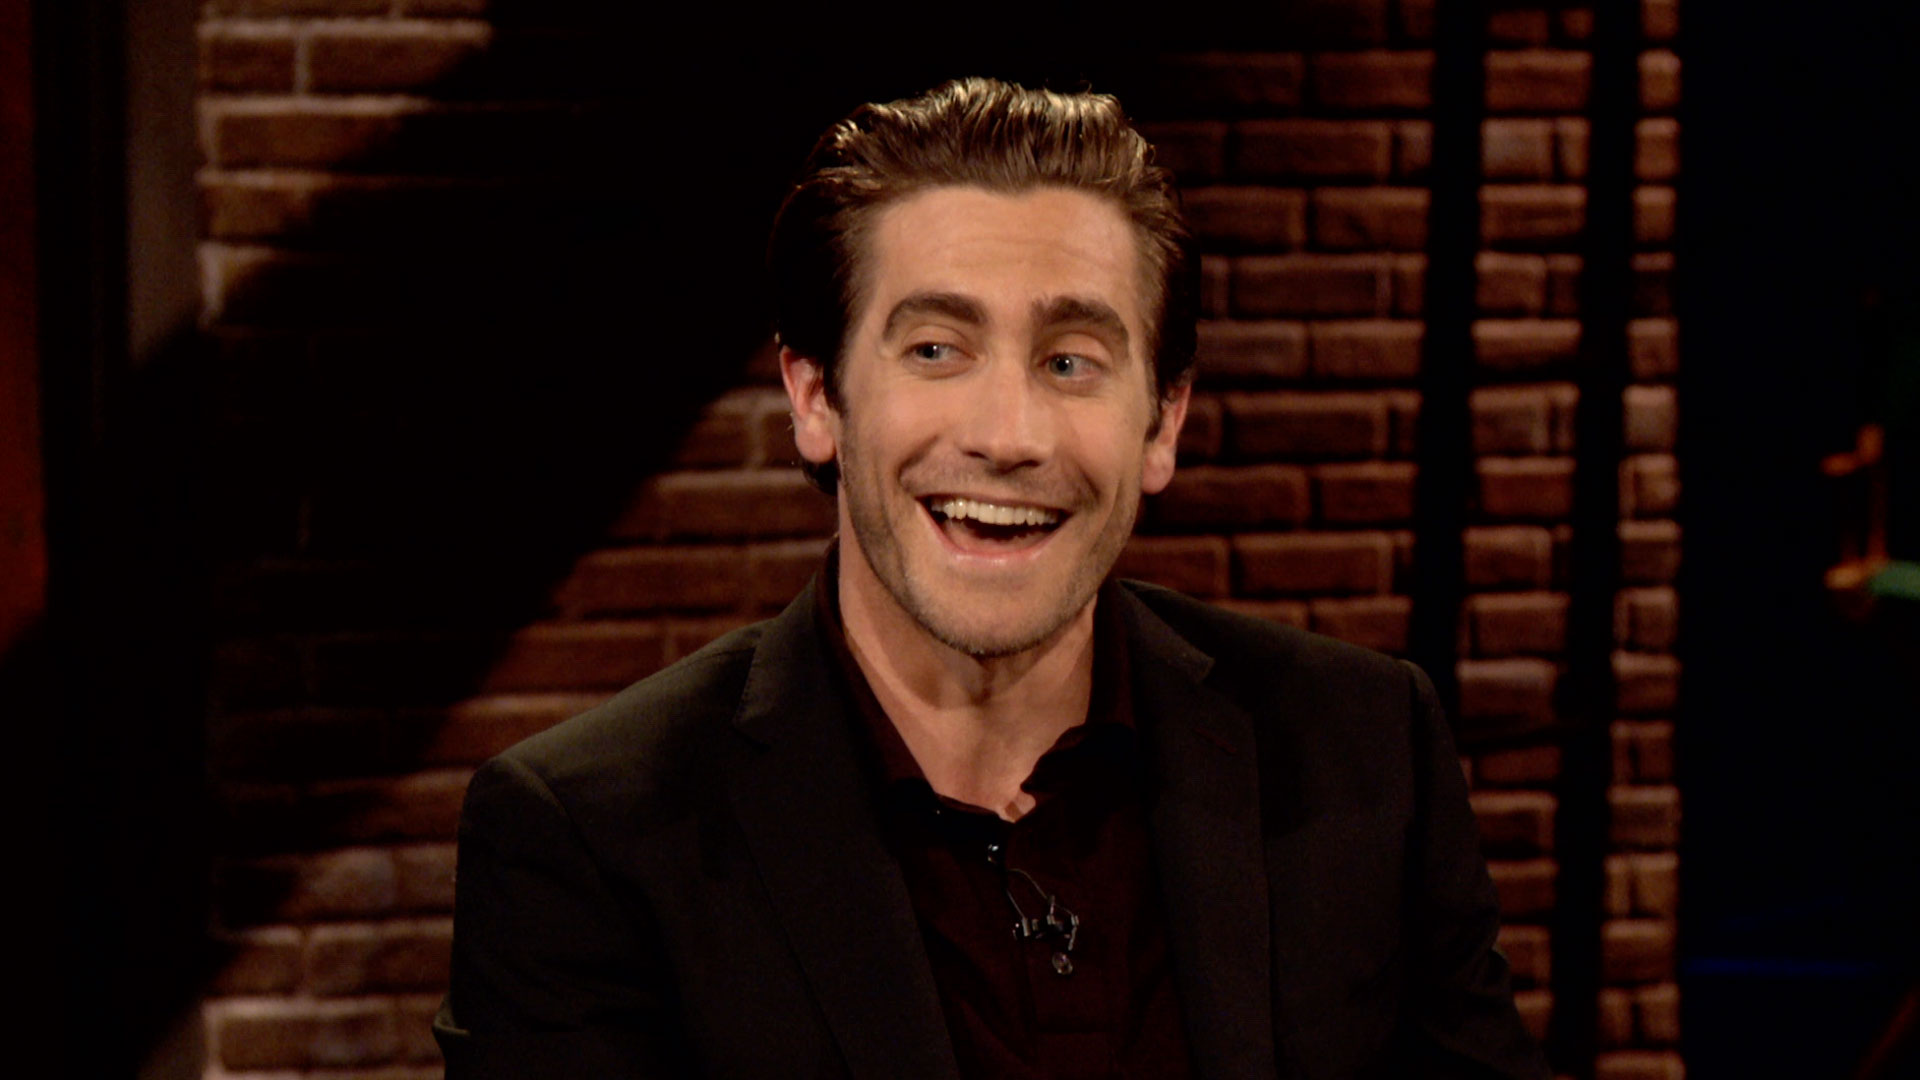 Jake Gyllenhaal - Dude Where's My Car?